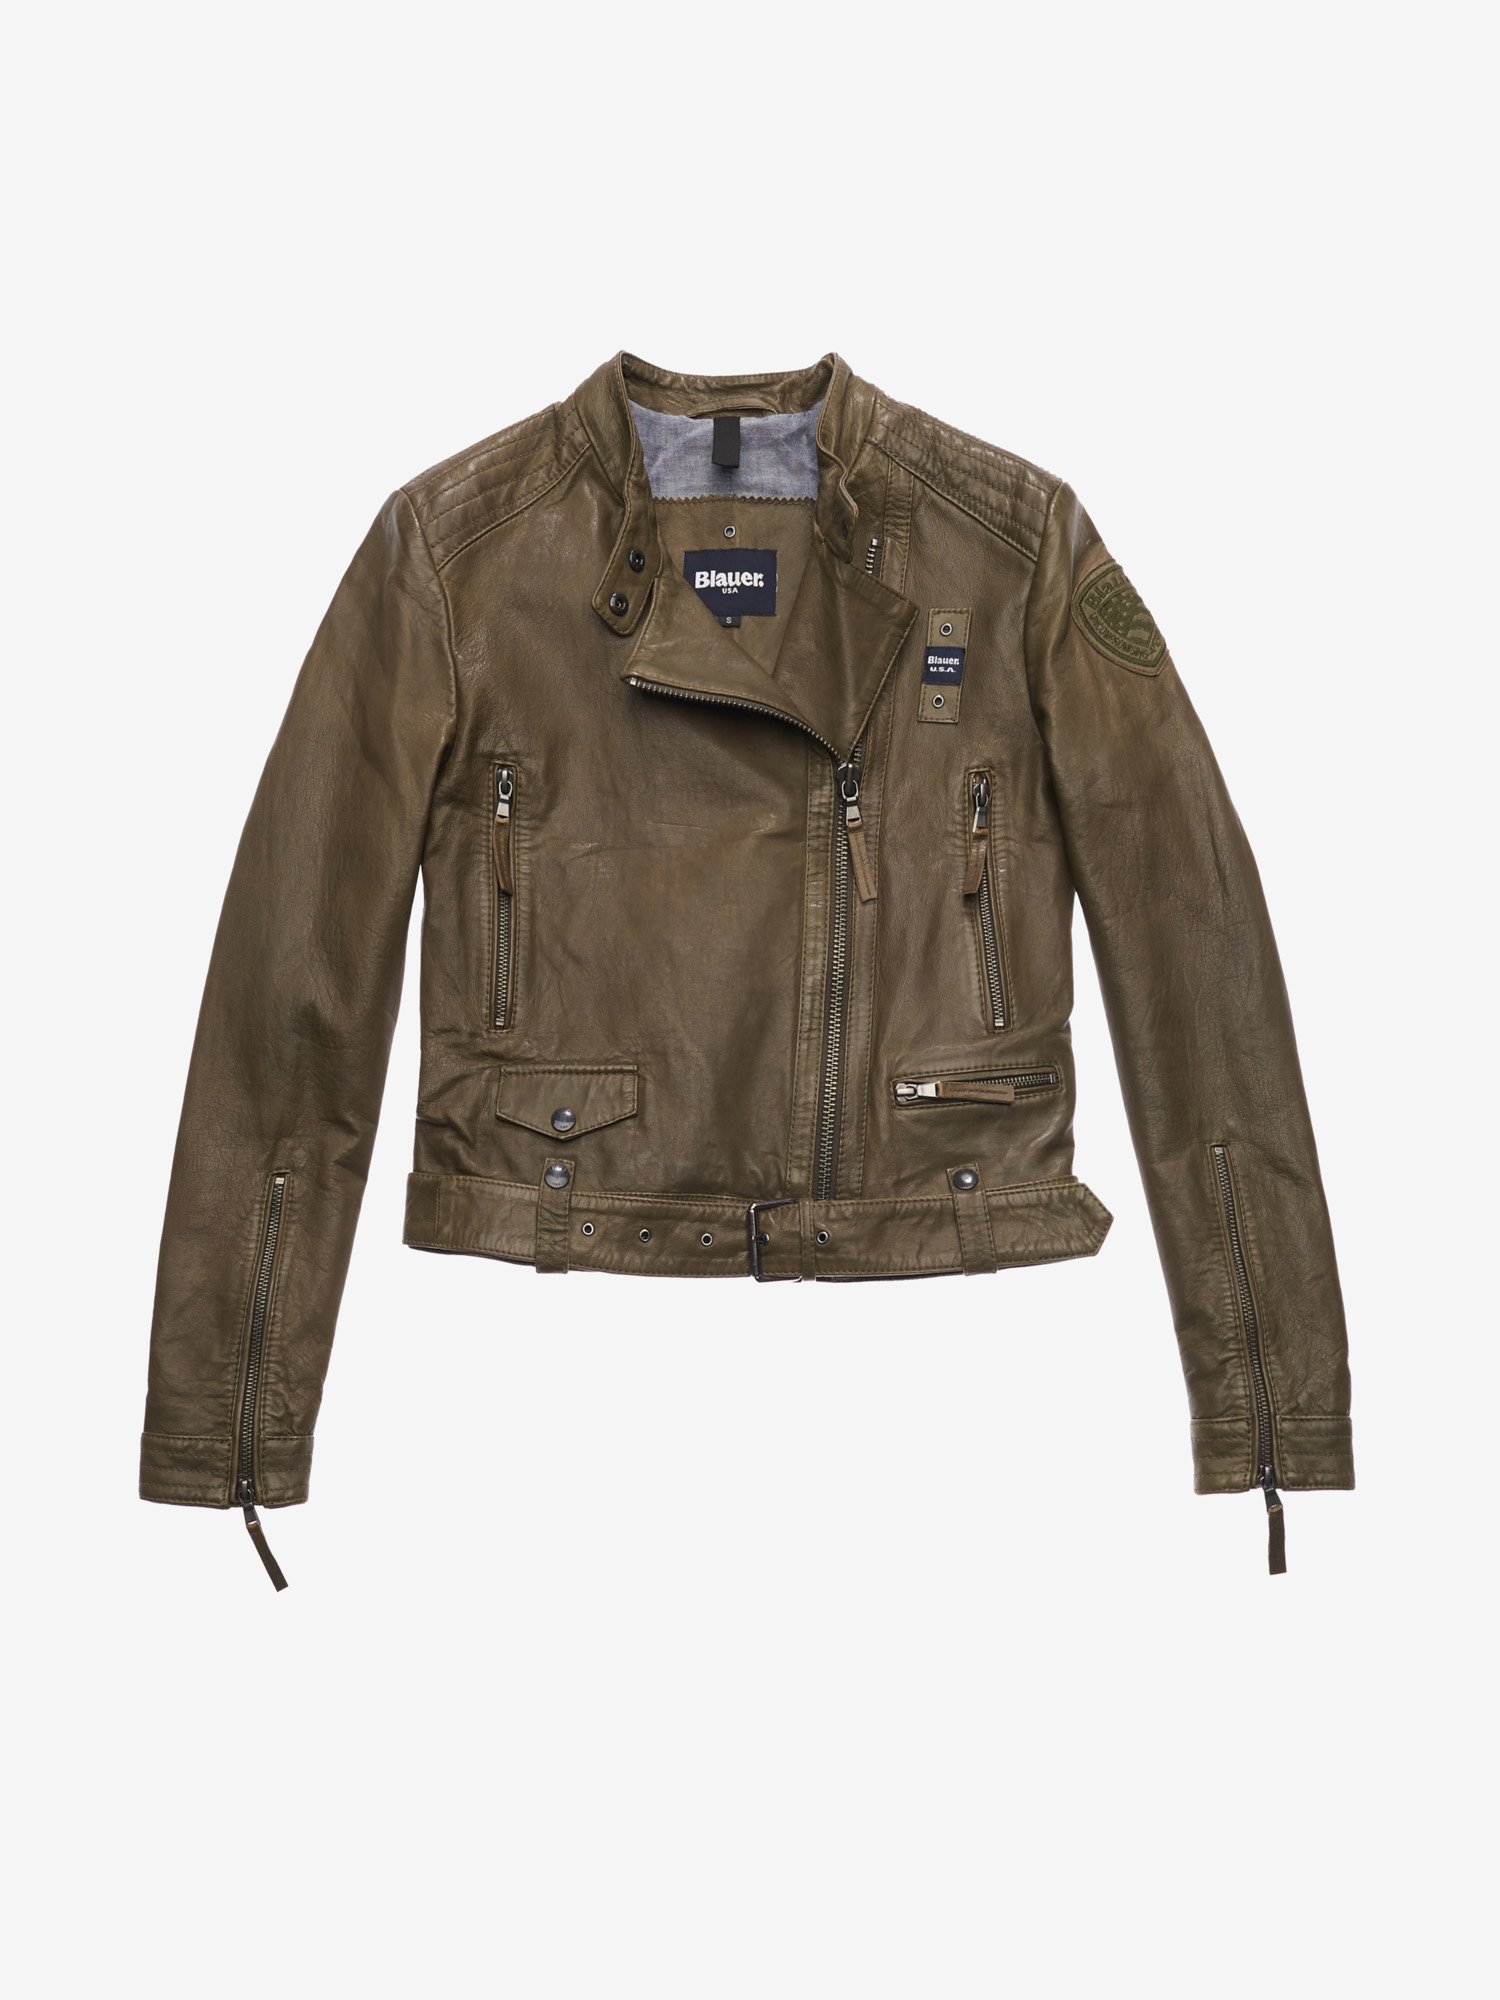 RODRIGUEZ USED-EFFECT JACKET - Blauer